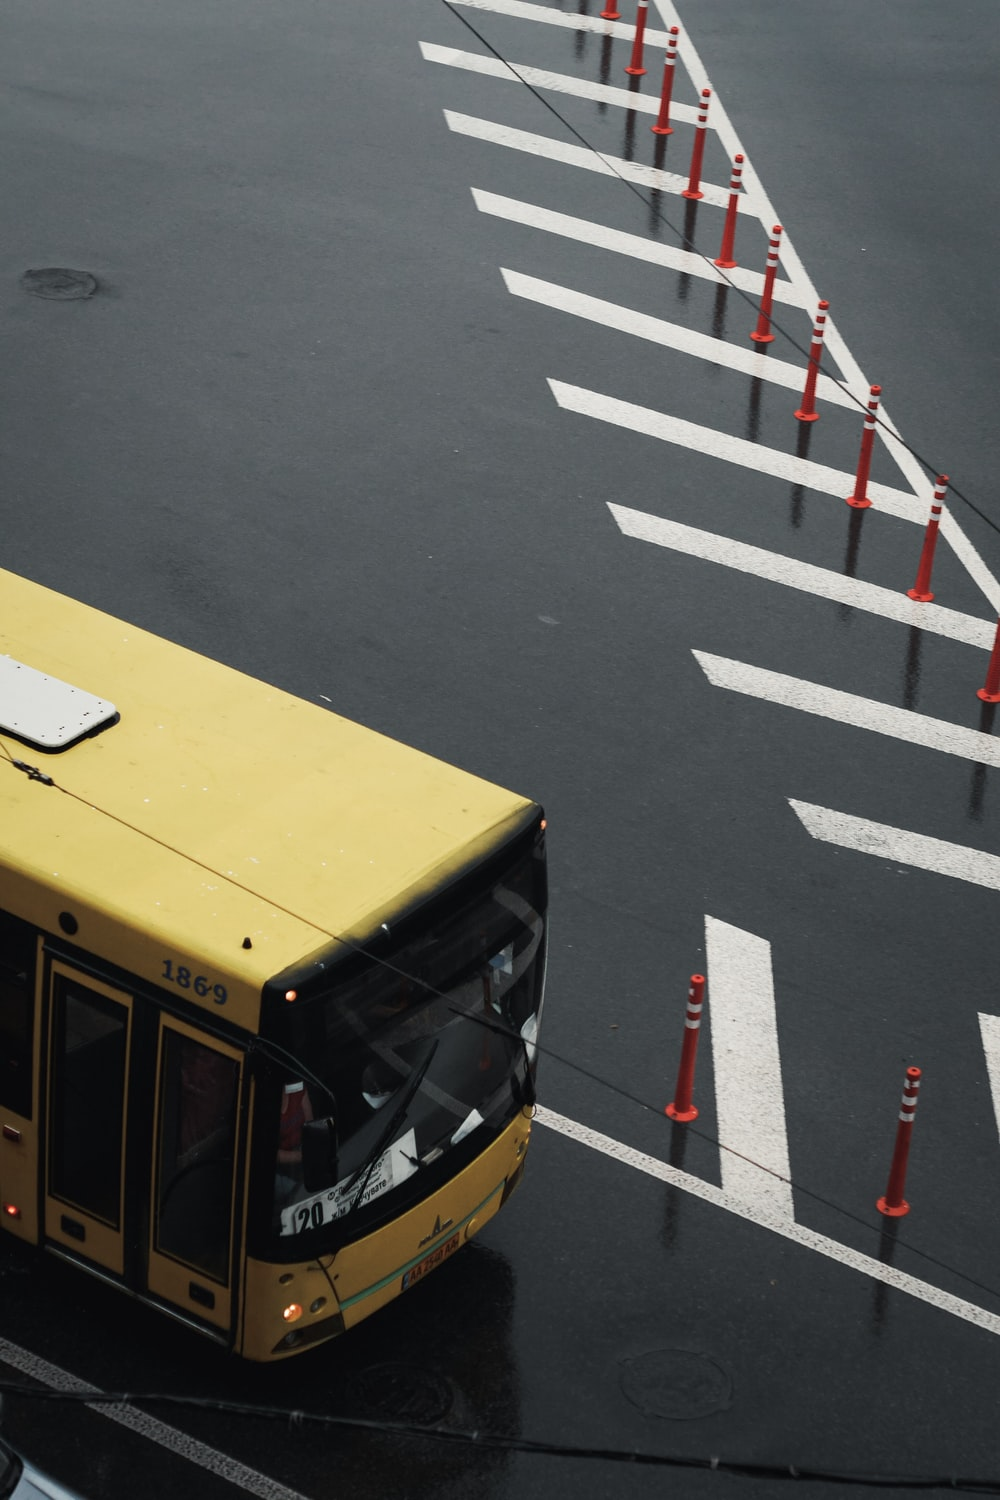 yellow bus on gray asphalt road during daytime